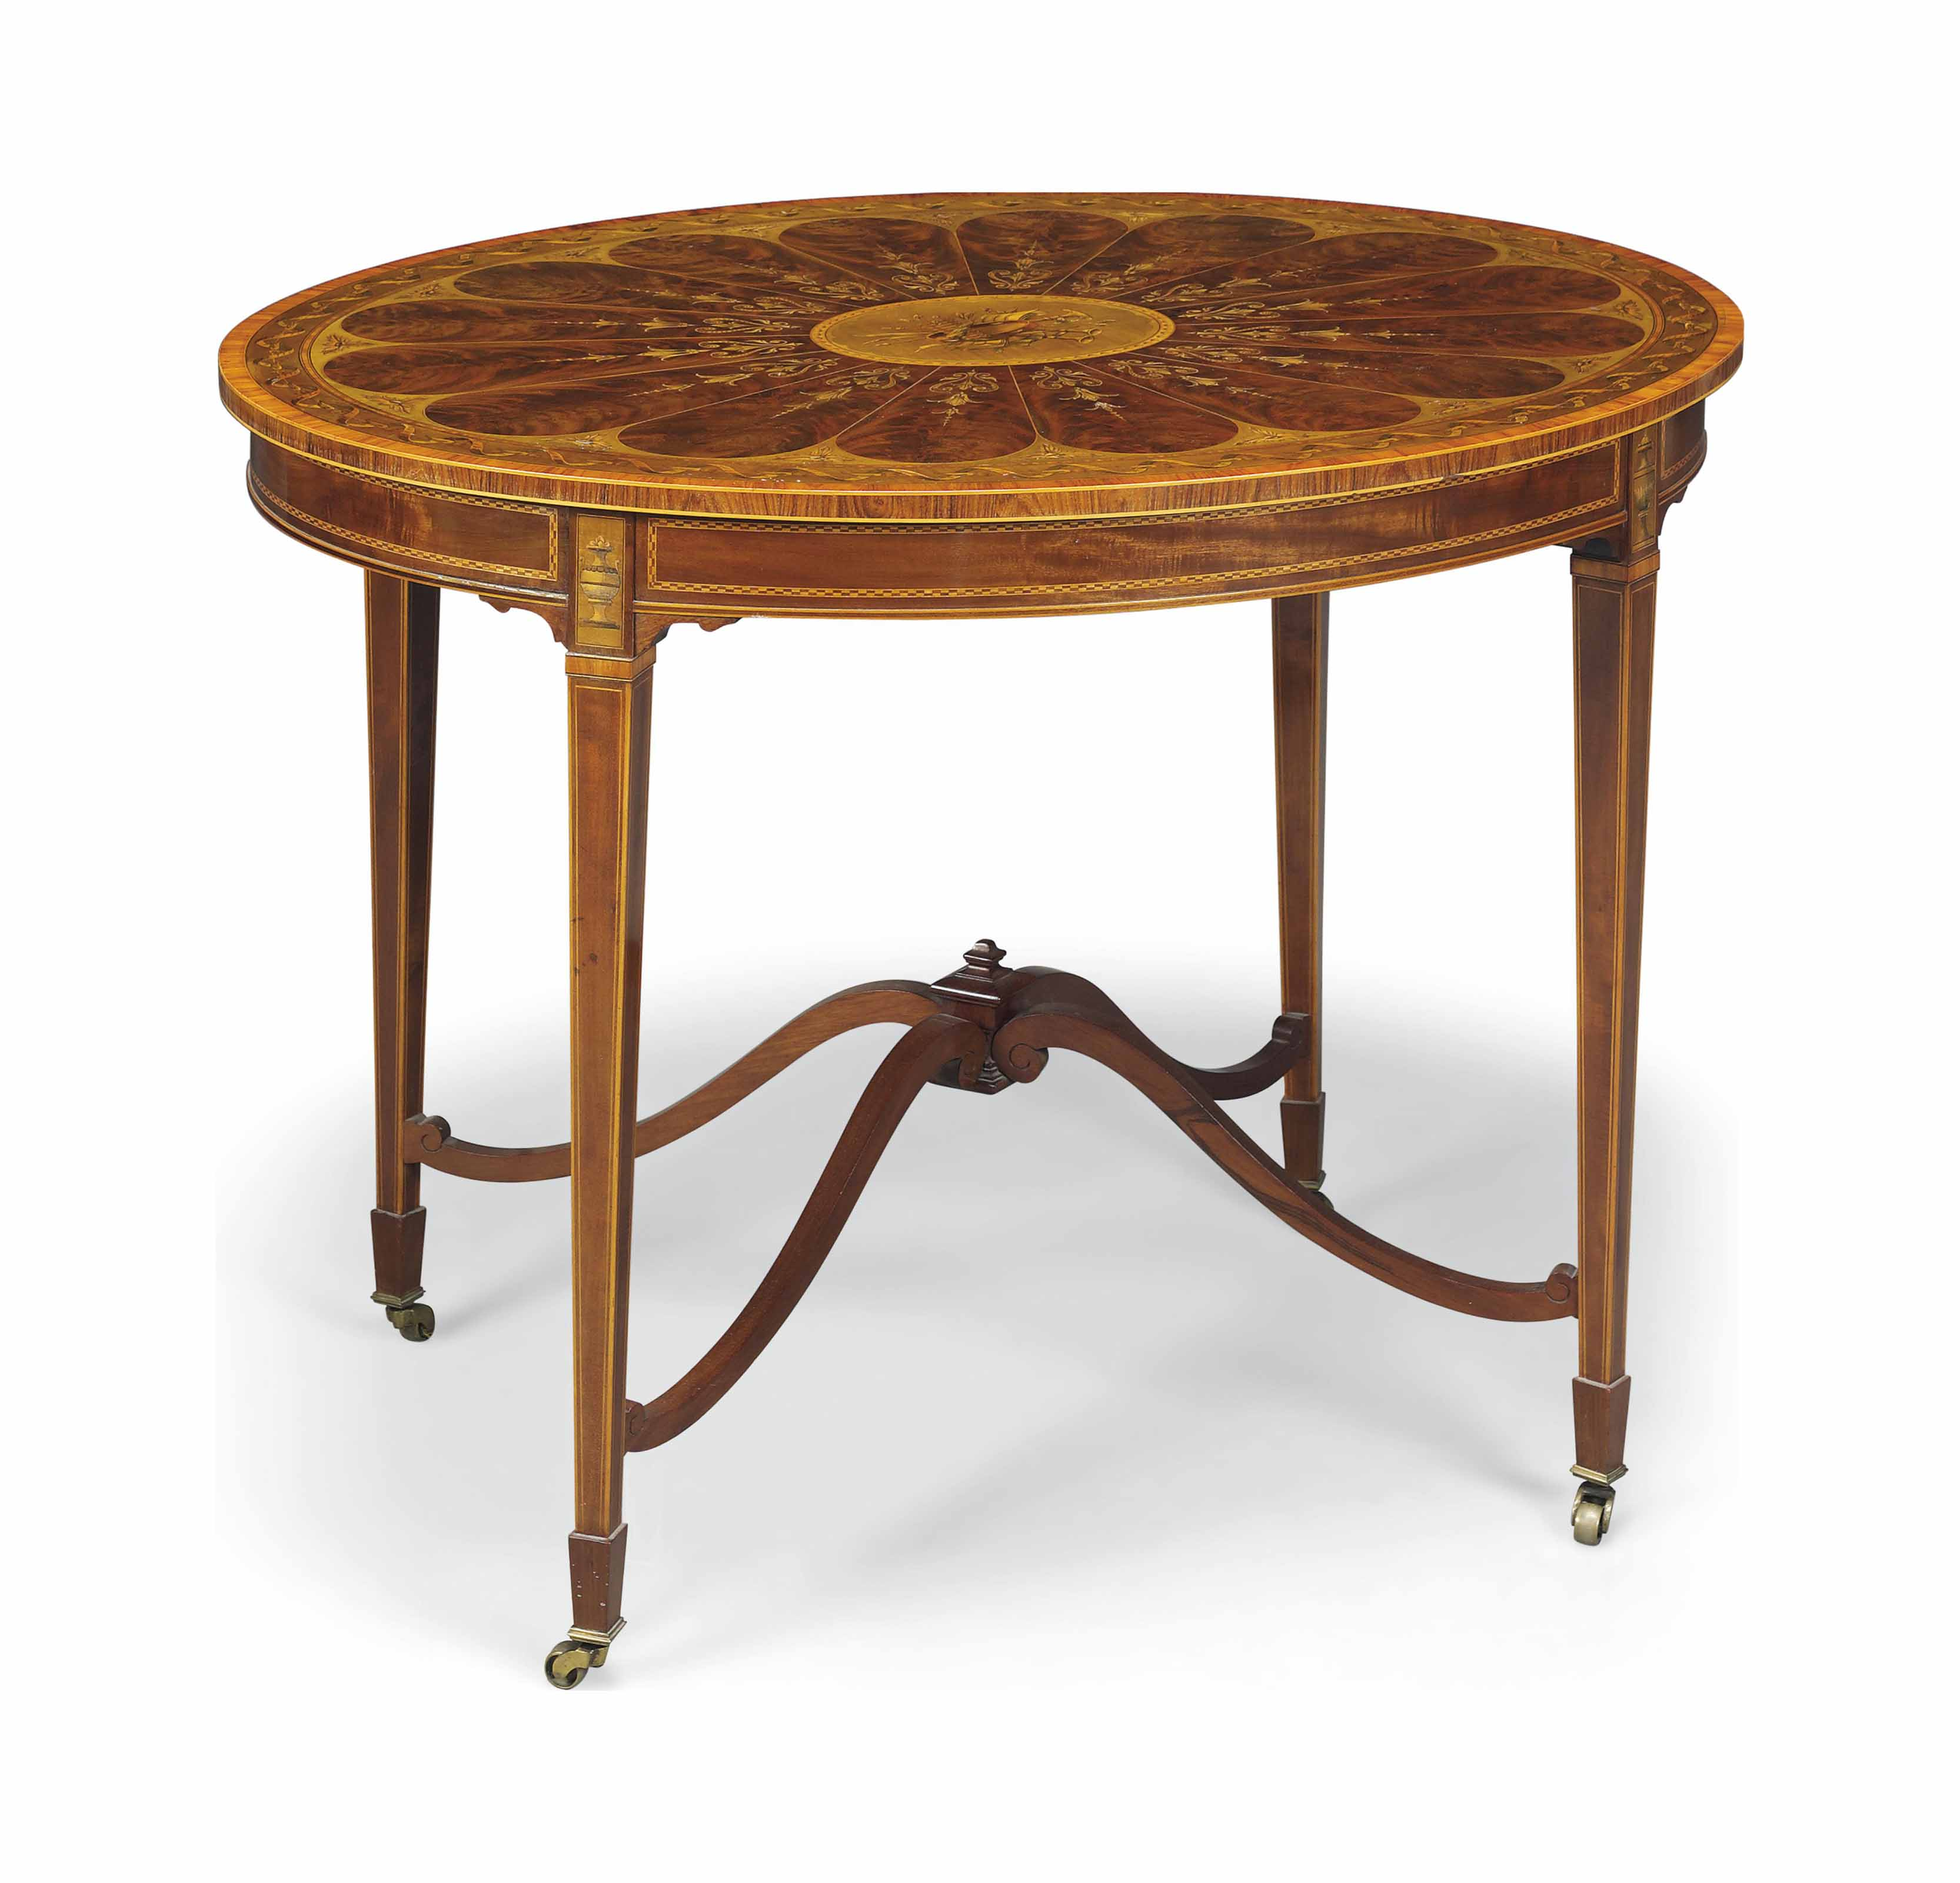 AN EDWARDIAN TULIPWOOD-CROSSBANDED, STAINED-SYCAMORE, MAHOGANY AND MARQUETRY OVAL CENTRE TABLE